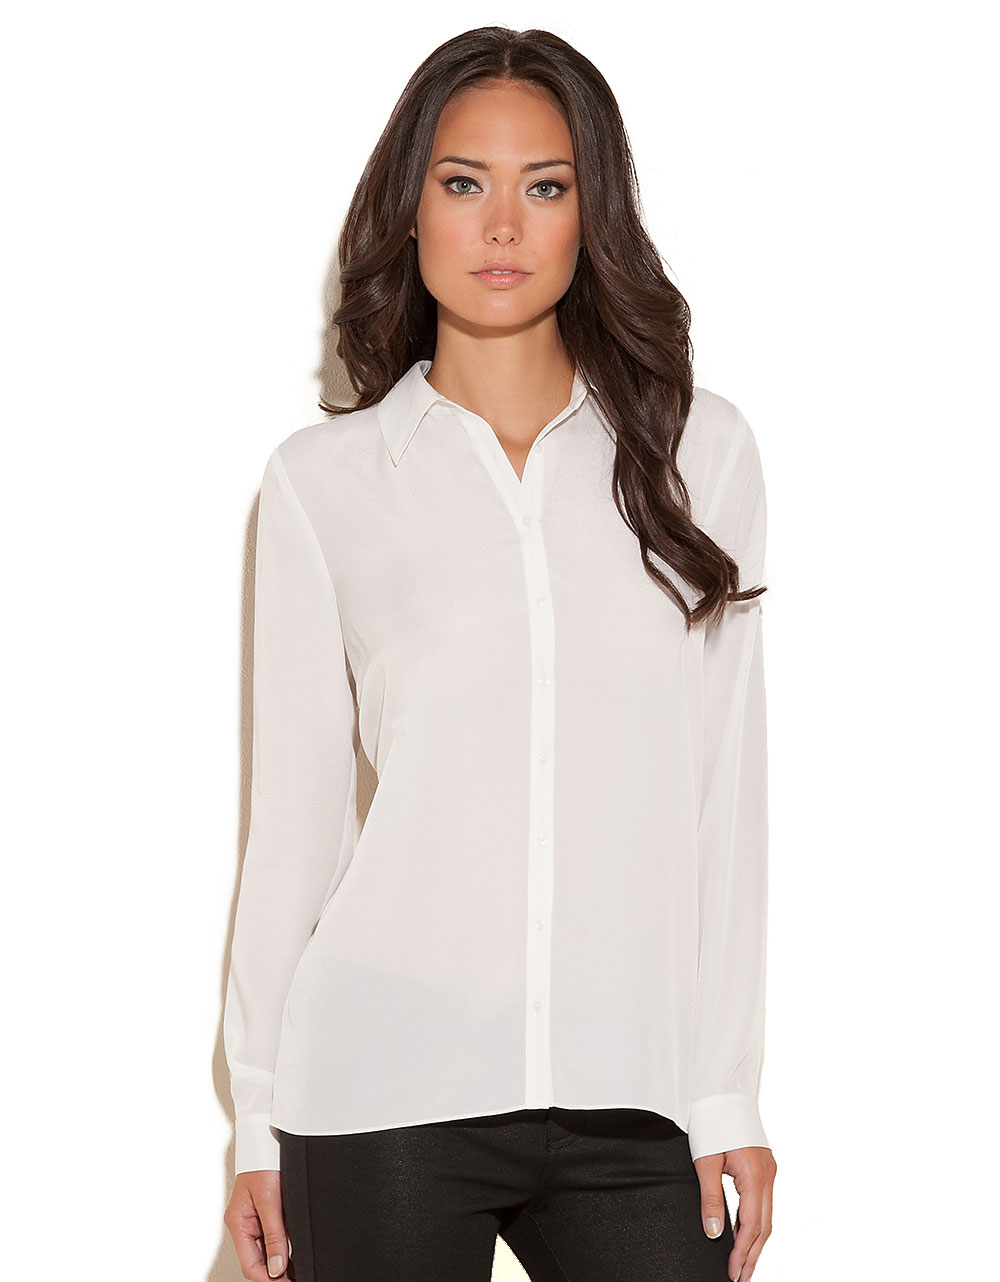 Guess White Blouse - Hot Black Blouse